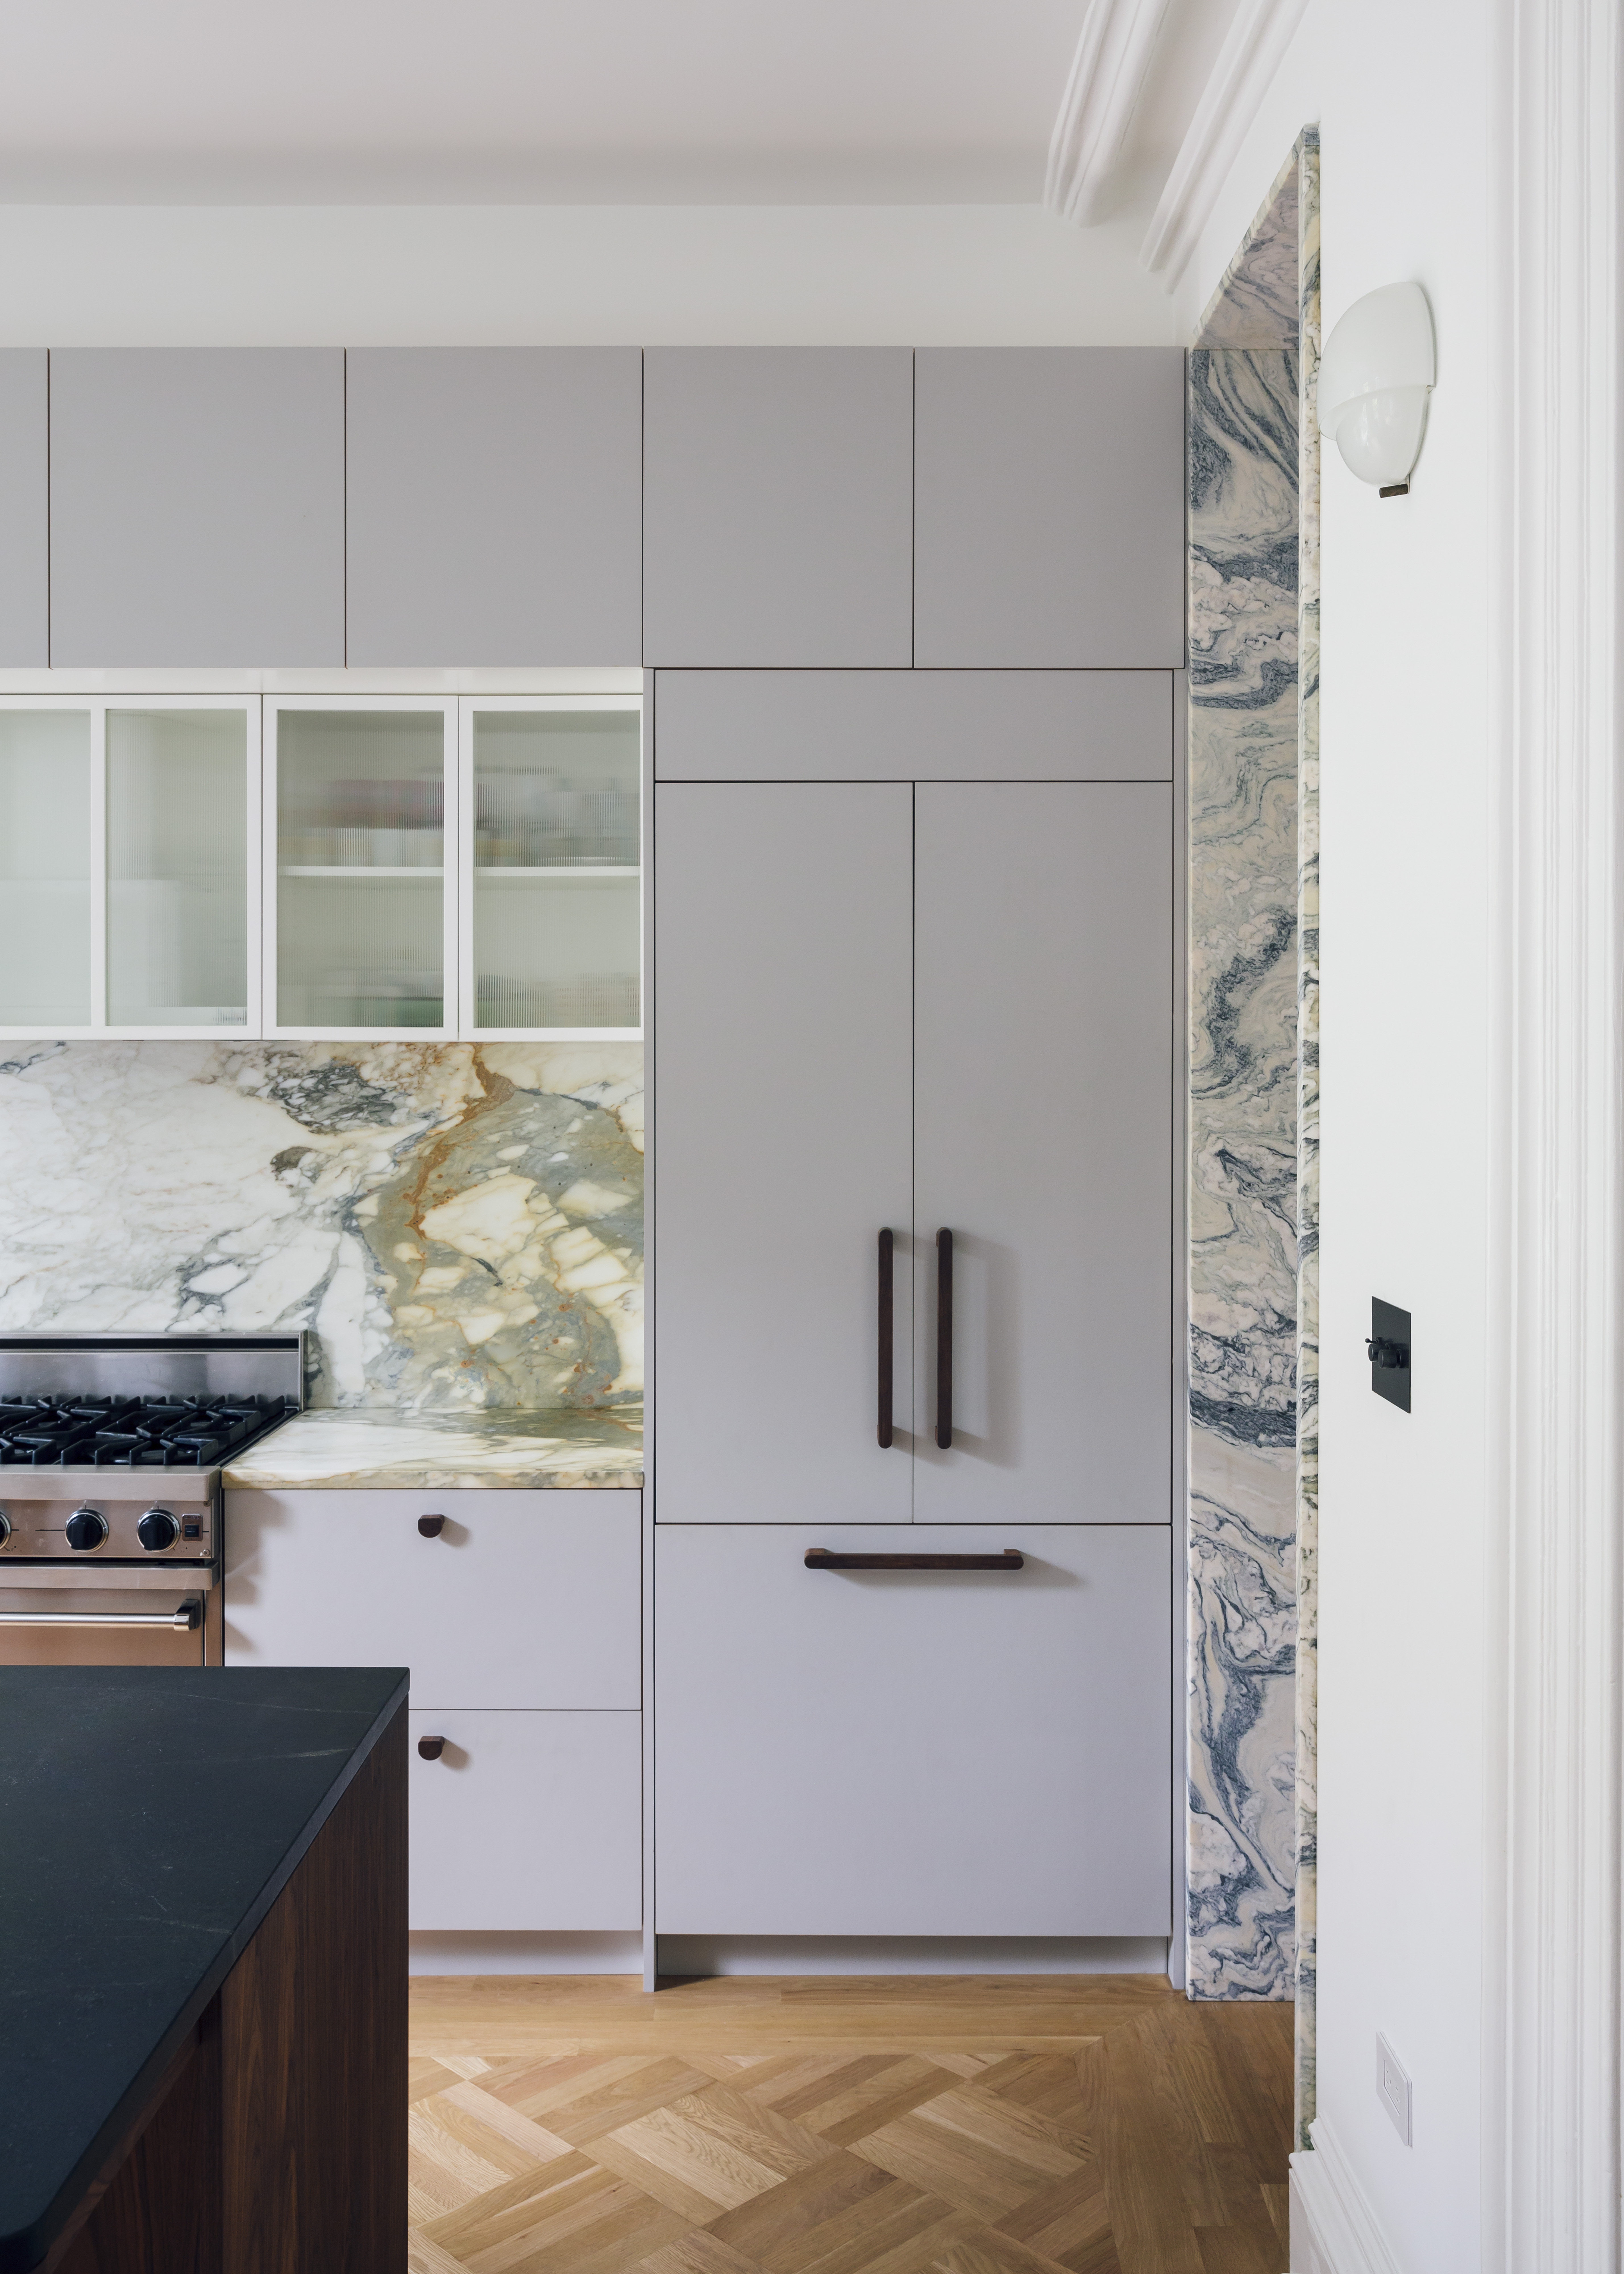 The kitchen is kept neat thanks to tucked-away appliances, like an integrated refrigerator hidden behind cabinet fronts and a vent hood tucked into the custom reeded-glass upper cabinets. The walnut pulls were custom-designed by Civilivn.